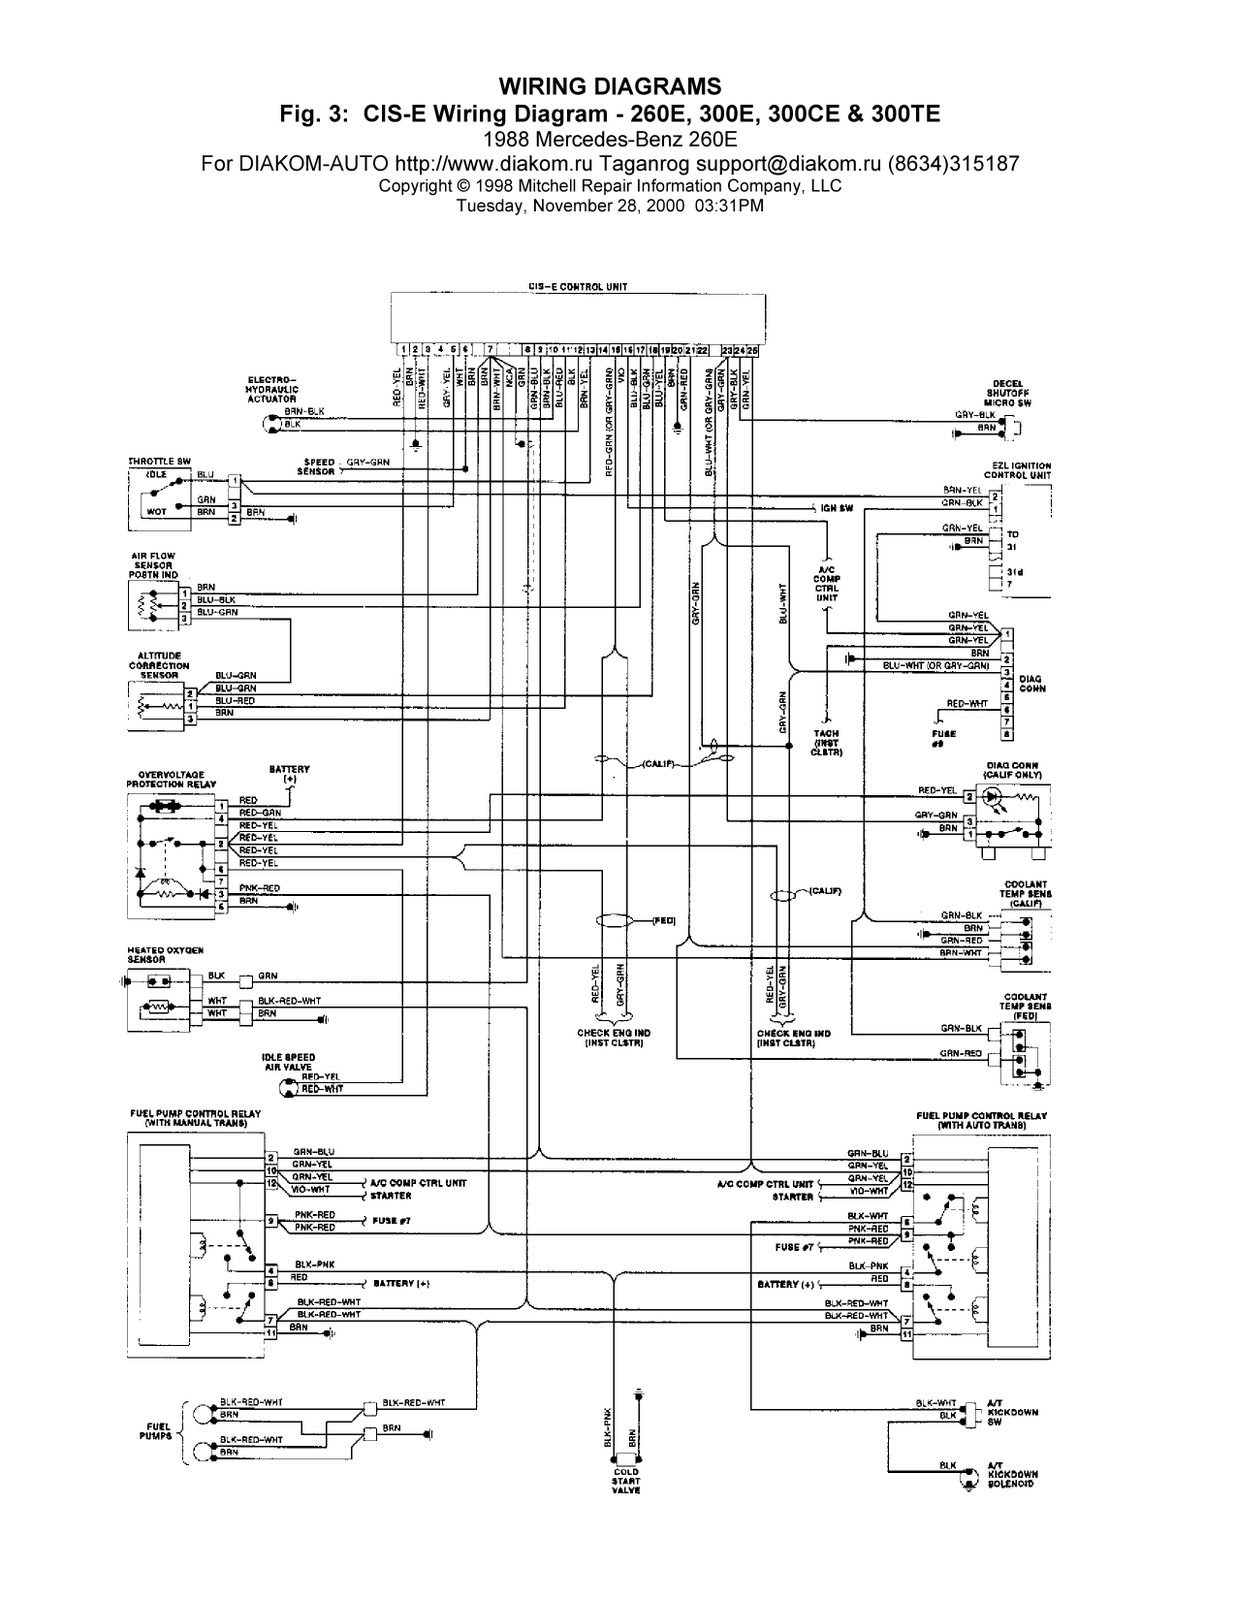 Mercedes Wiring Diagram | Wiring Diagram on nissan frontier wiring diagram, porsche cayenne wiring diagram, gmc yukon wiring diagram, toyota camry wiring diagram, isuzu rodeo wiring diagram, mercedes ml320 spark plugs, mitsubishi eclipse wiring diagram, toyota rav4 wiring diagram, ford ranger wiring diagram, mercedes ml320 oil cooler, mercedes ml320 dash lights, nissan quest wiring diagram, lexus rx300 wiring diagram, mercedes ml320 oil leak, toyota tundra wiring diagram, toyota 4runner wiring diagram, dodge dakota wiring diagram, nissan pathfinder wiring diagram, mercedes ml320 transmission problems, bmw x5 wiring diagram,